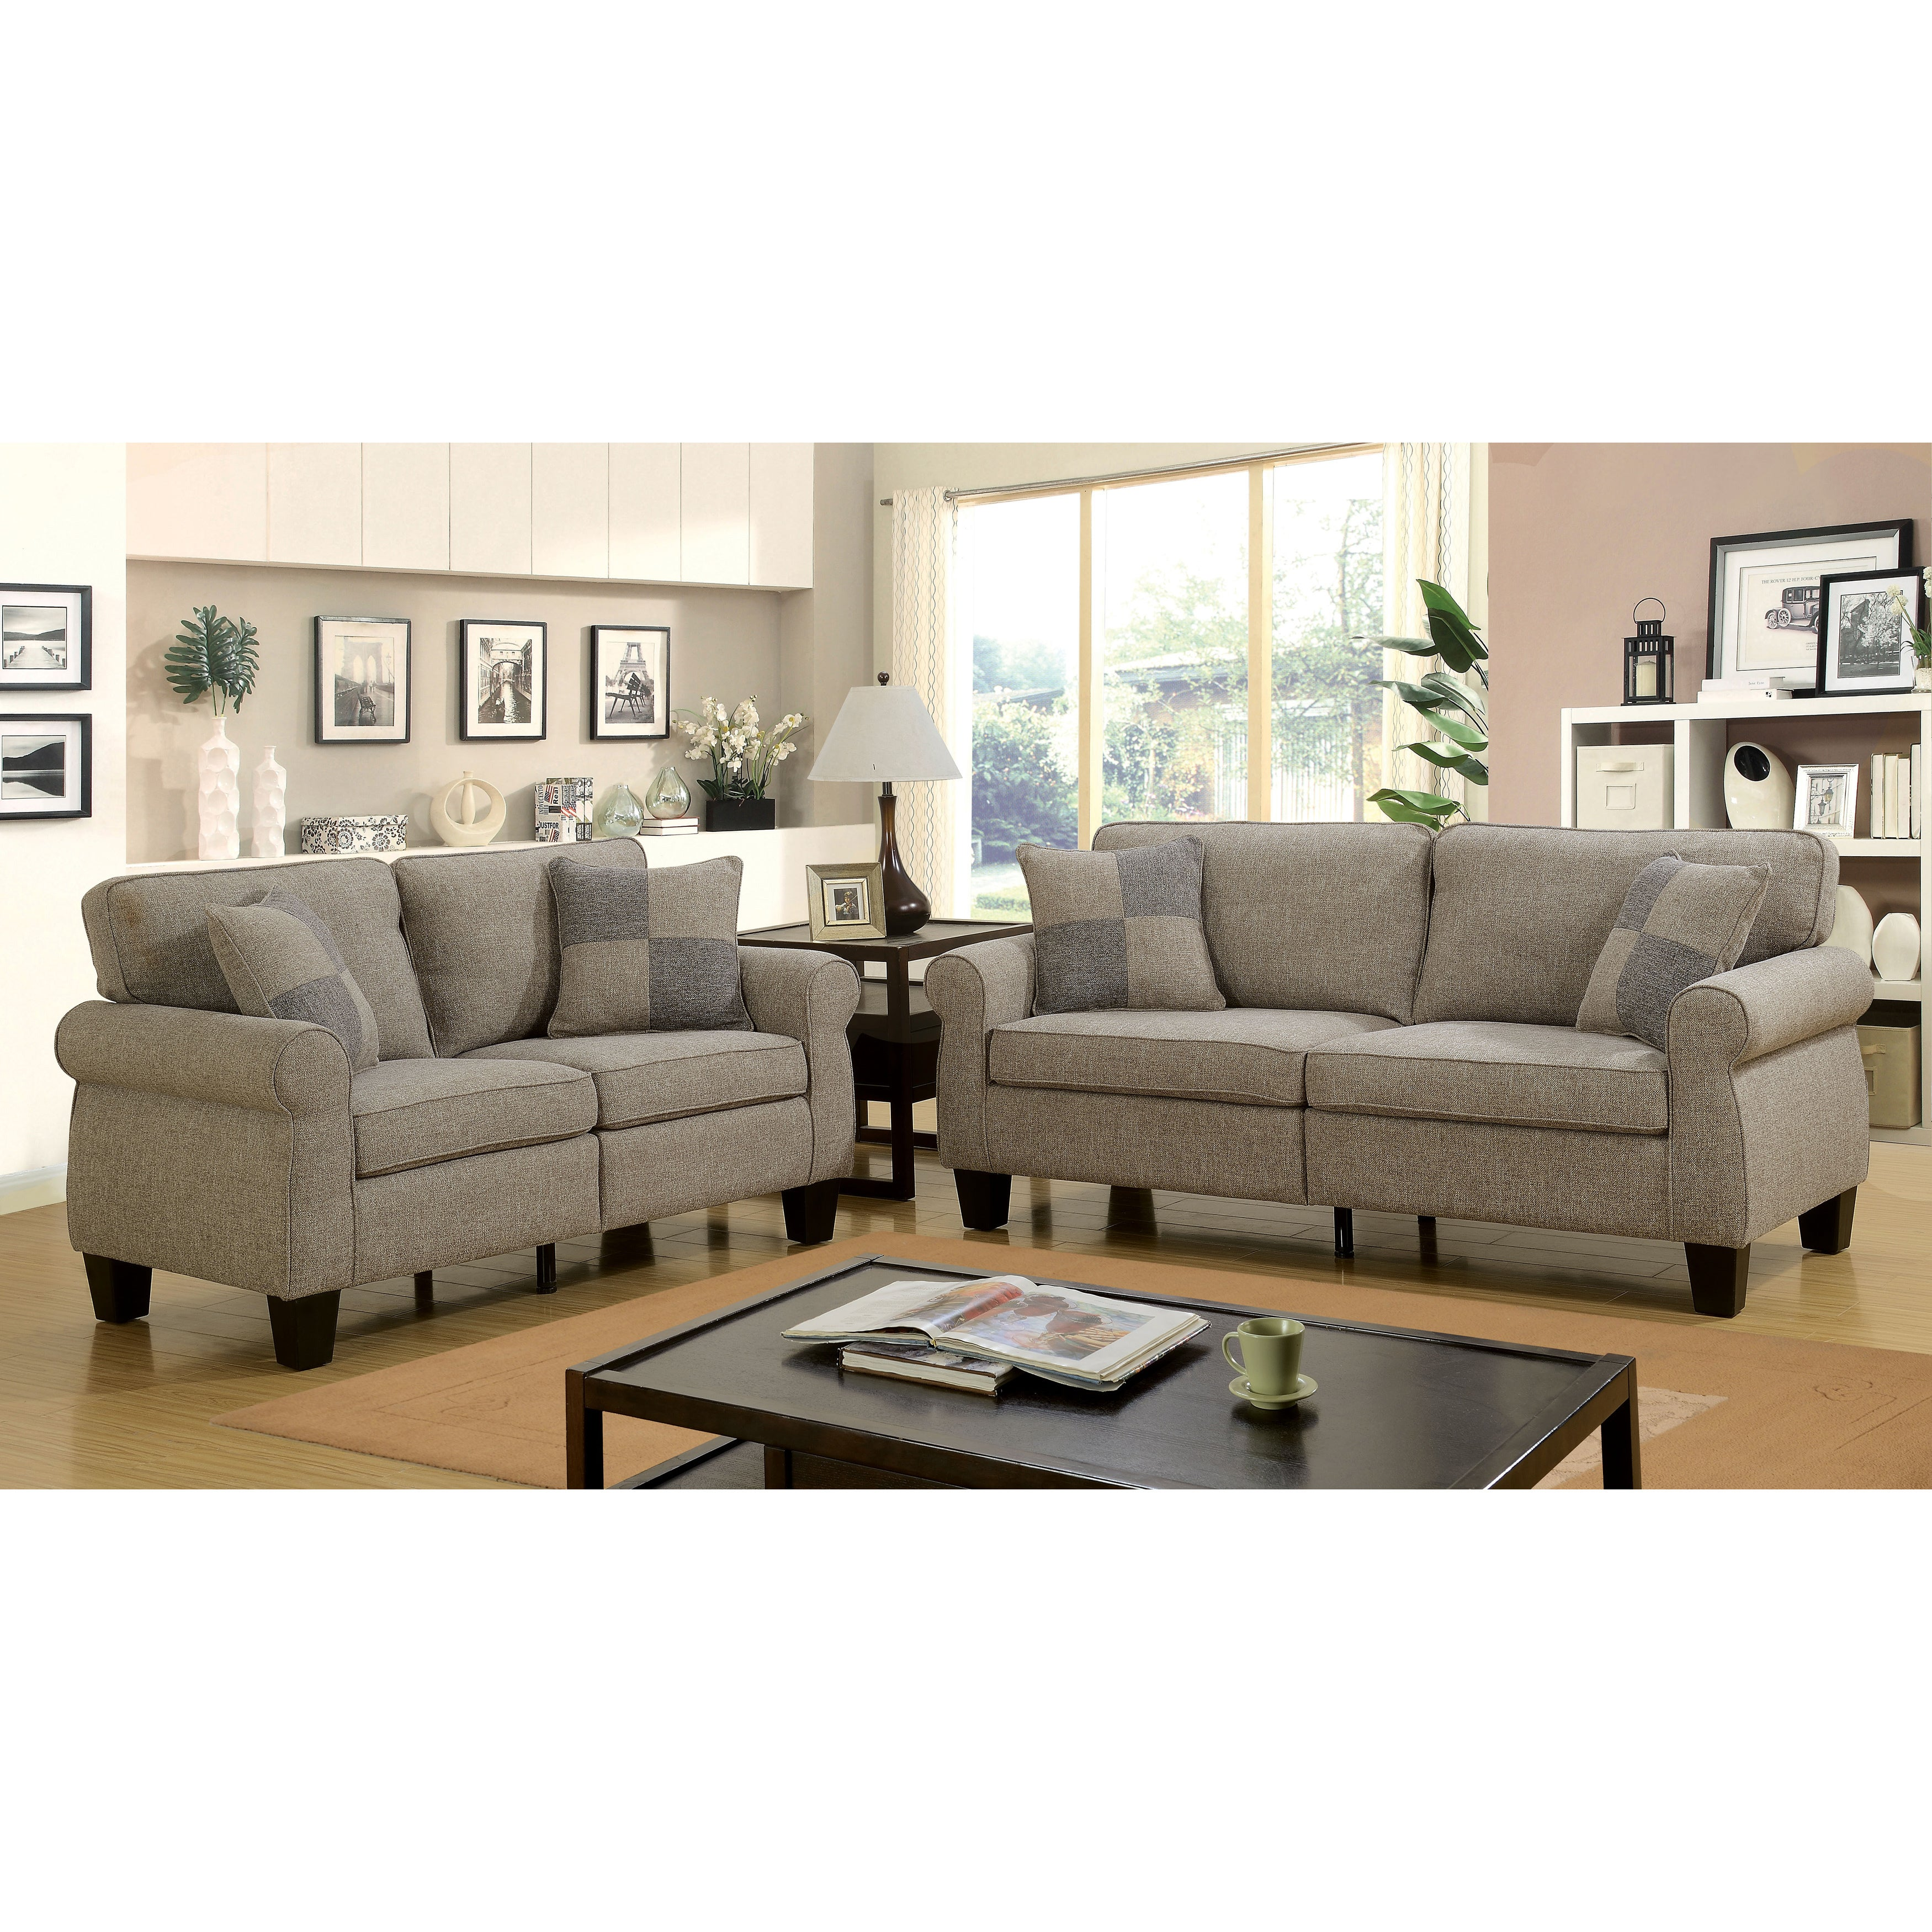 Herena Contemporary 2-Piece Sofa Set by FOA